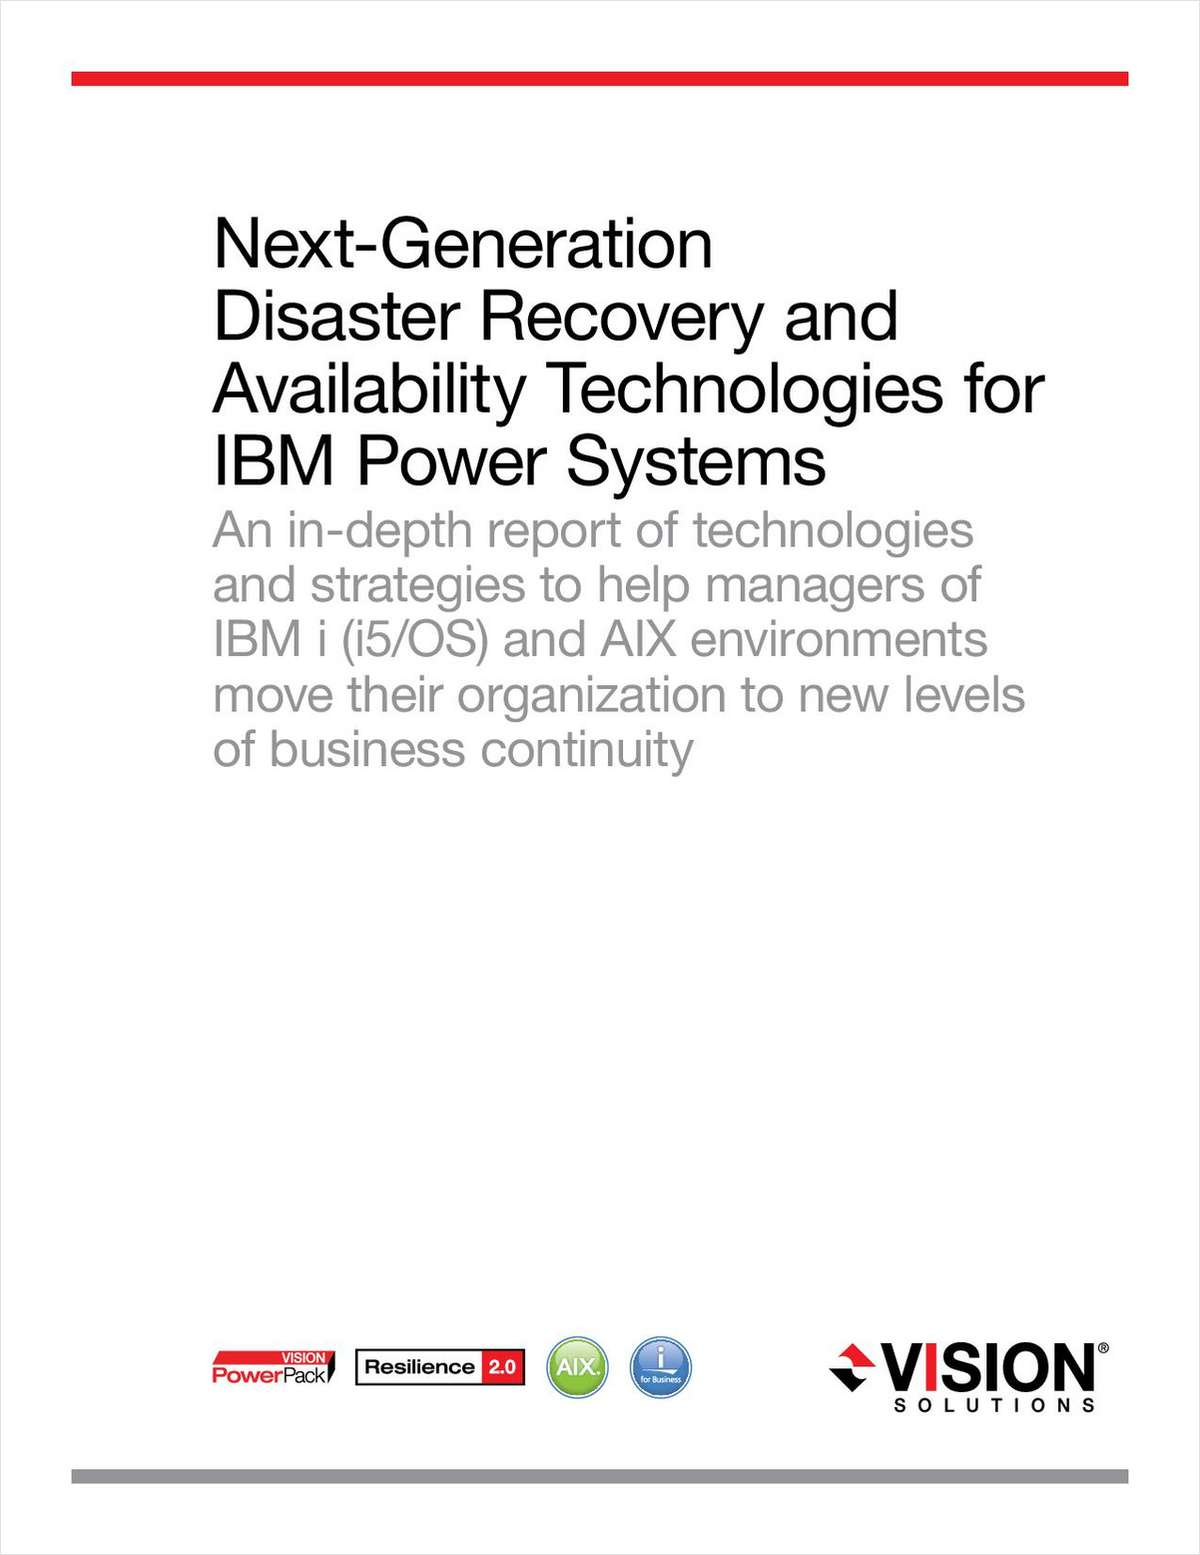 Next-Generation Disaster Recovery and Availability Technologies for AIX and IBM i (i5/OS) on IBM Power Systems